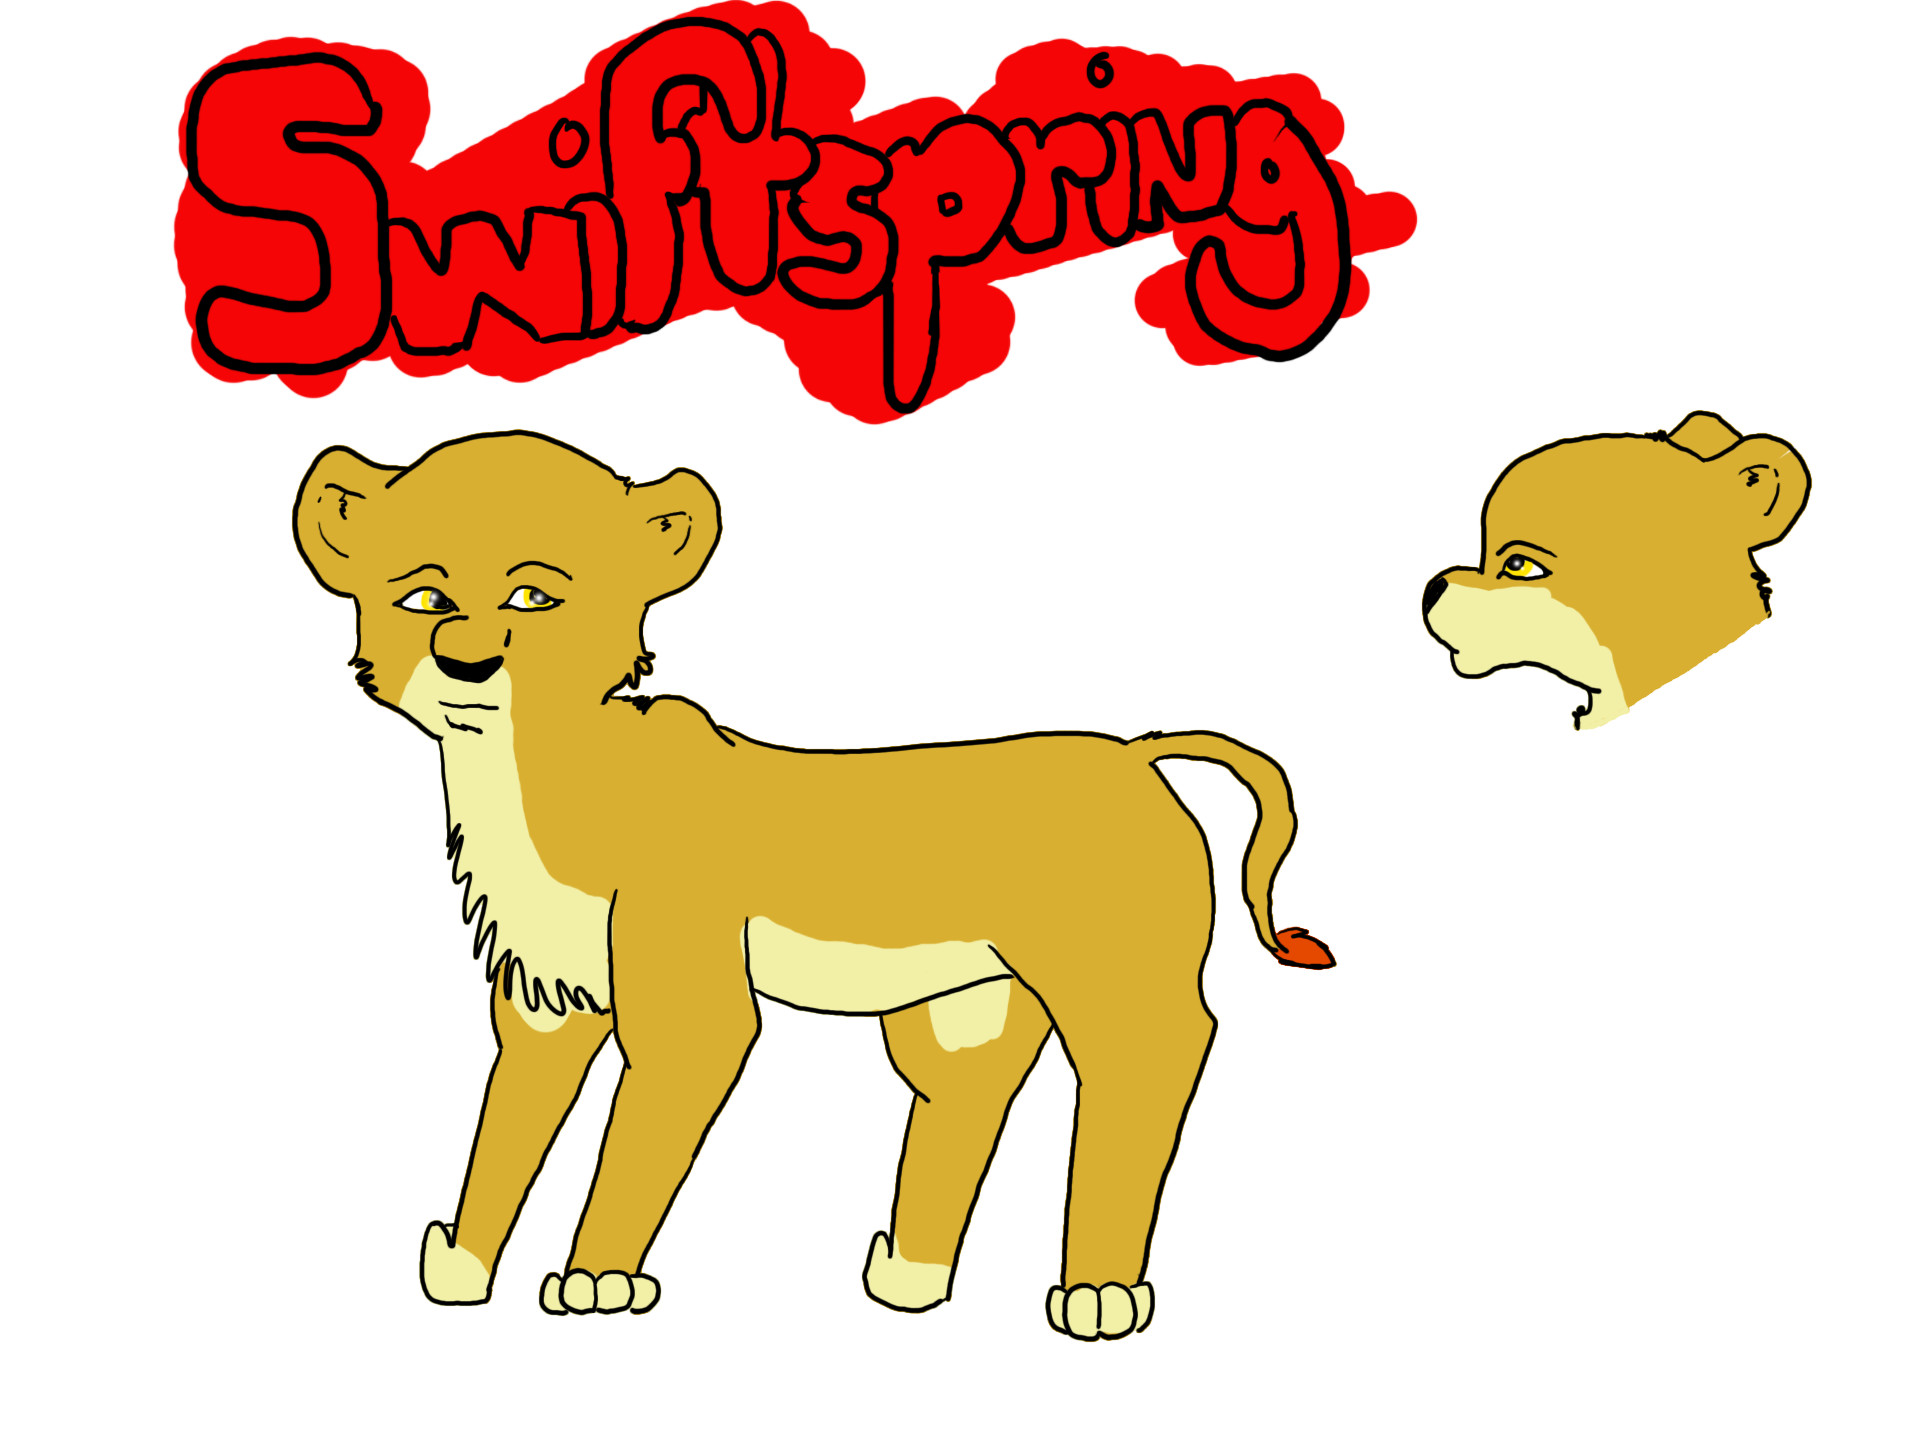 swiftspring_ref_by_nightstarstudios.jpg